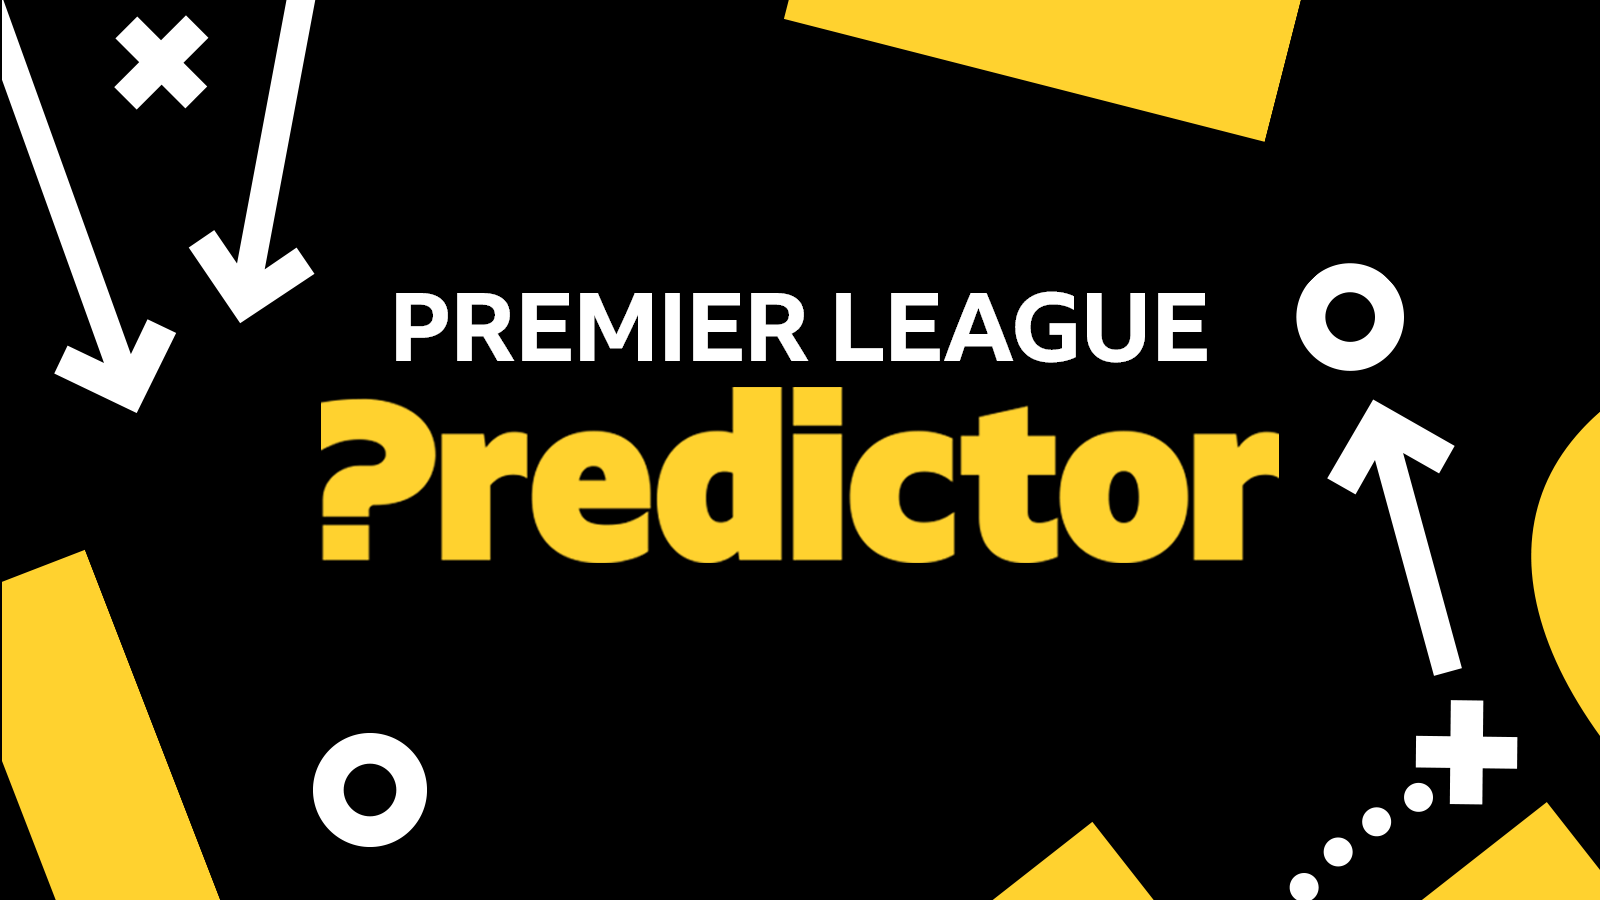 Play the Premier League Predictor